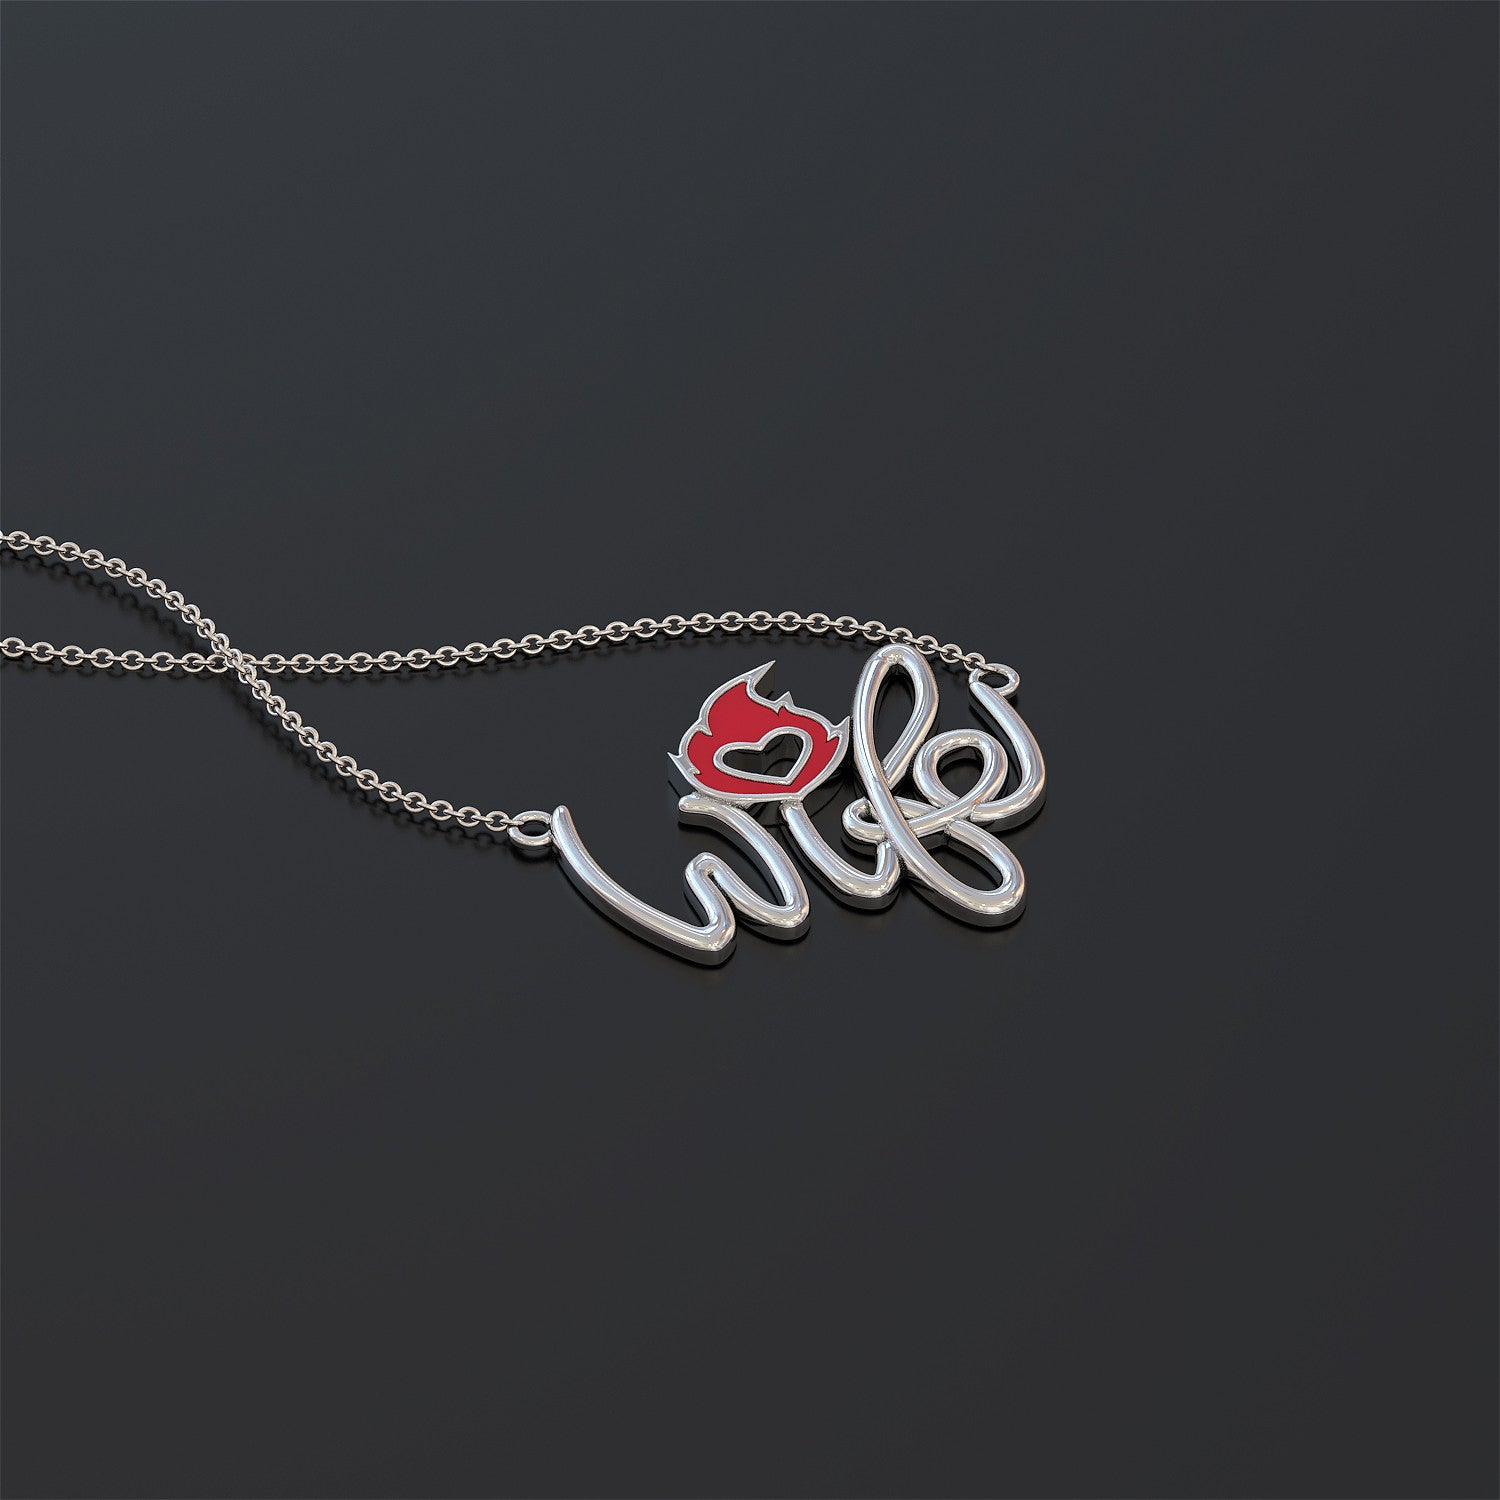 Fire Wife - Heart Flame Necklace